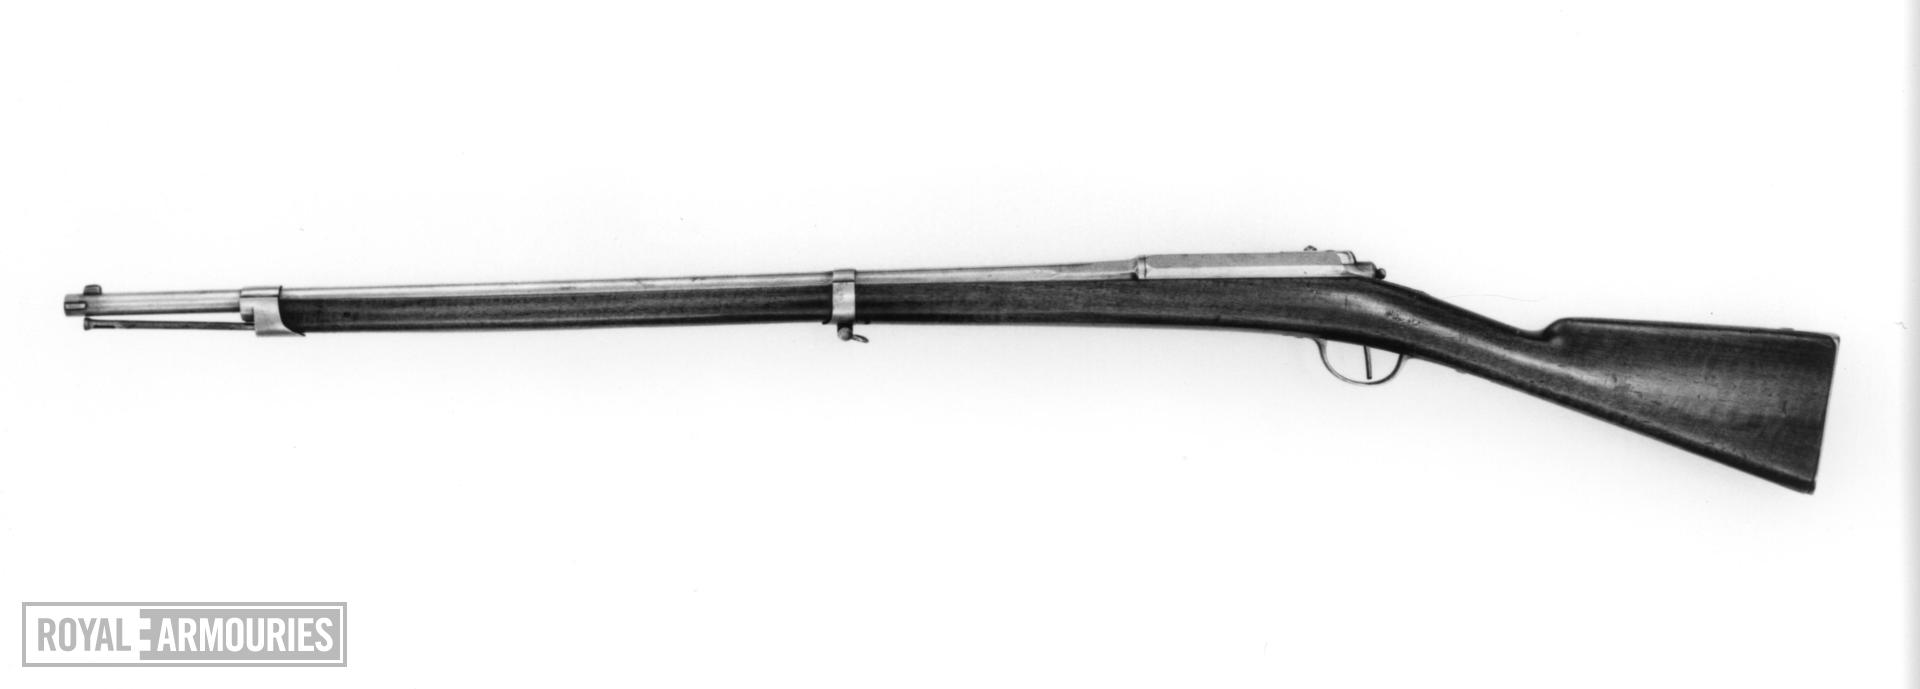 Needlefire breech-loading military rifle - Cloes System J. Cloes system (Infantry X4304)